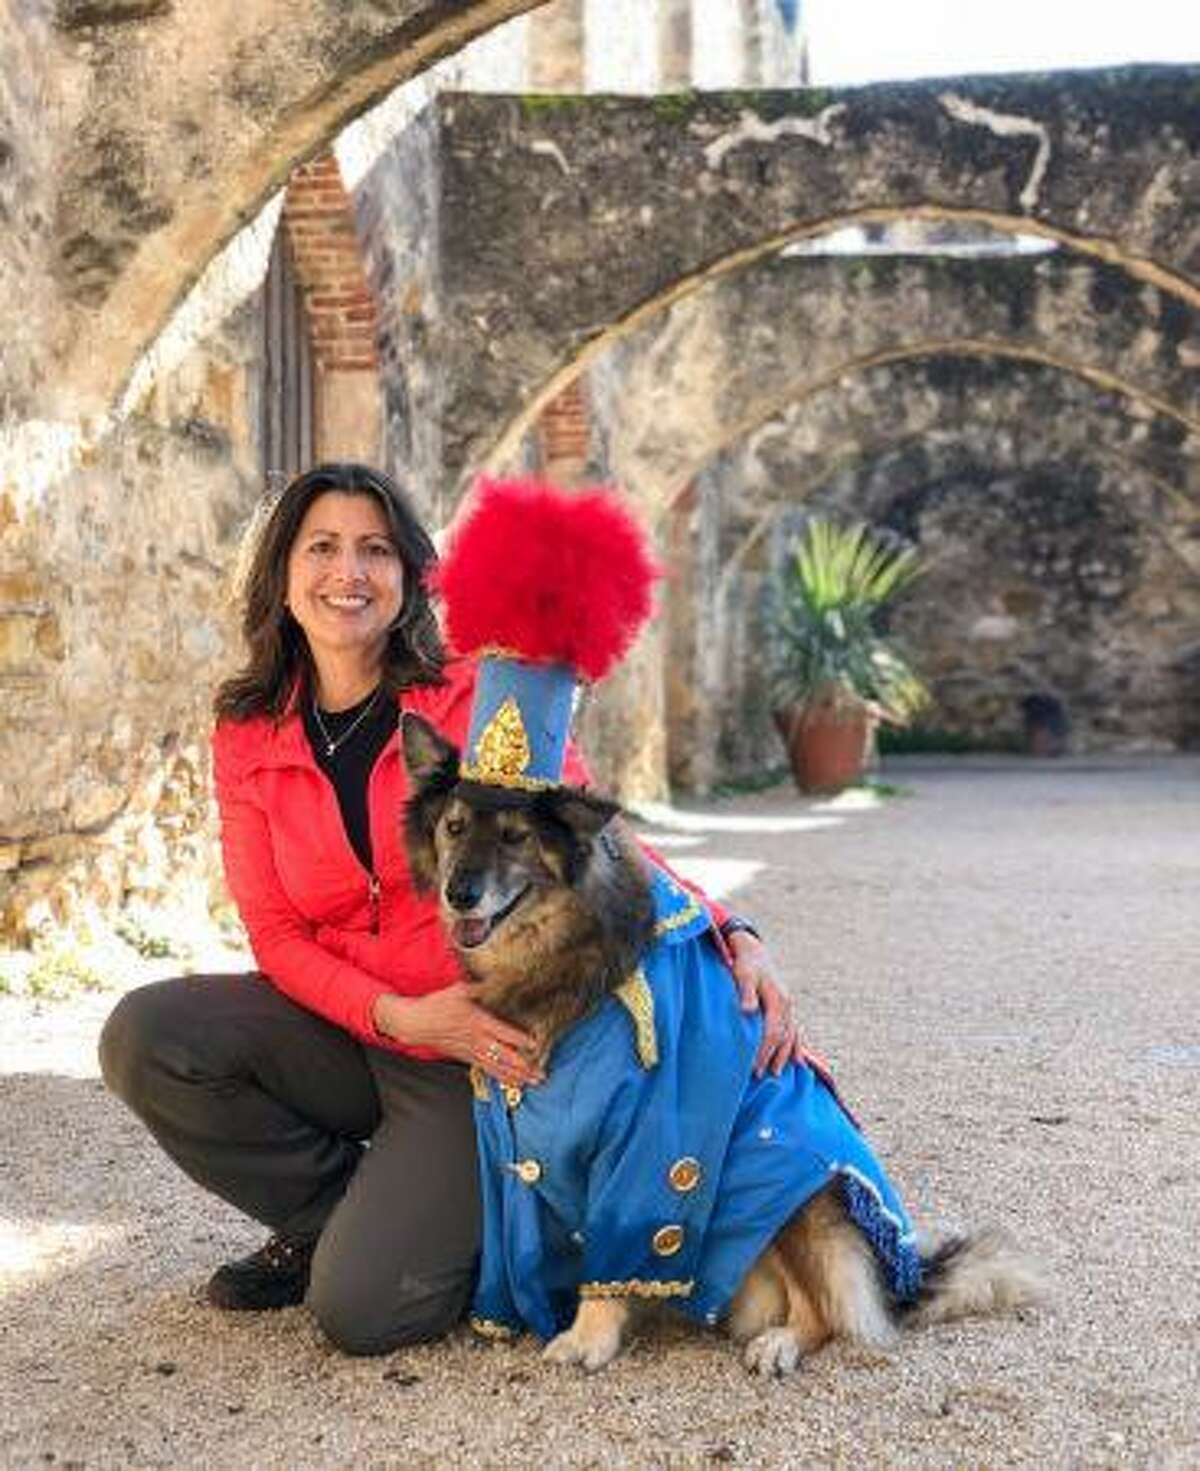 Norma Brooks, 53, is seen next to her therapy dog Shanti, who is this year's King Anbarkio XII, the grand marshal for Satruday's Fiesta Pooch Parade. Brooks died Friday, April 26, 2019, as a result of injuries she received from a car accident earlier this week, according to Therapy Animals of San Antonio.